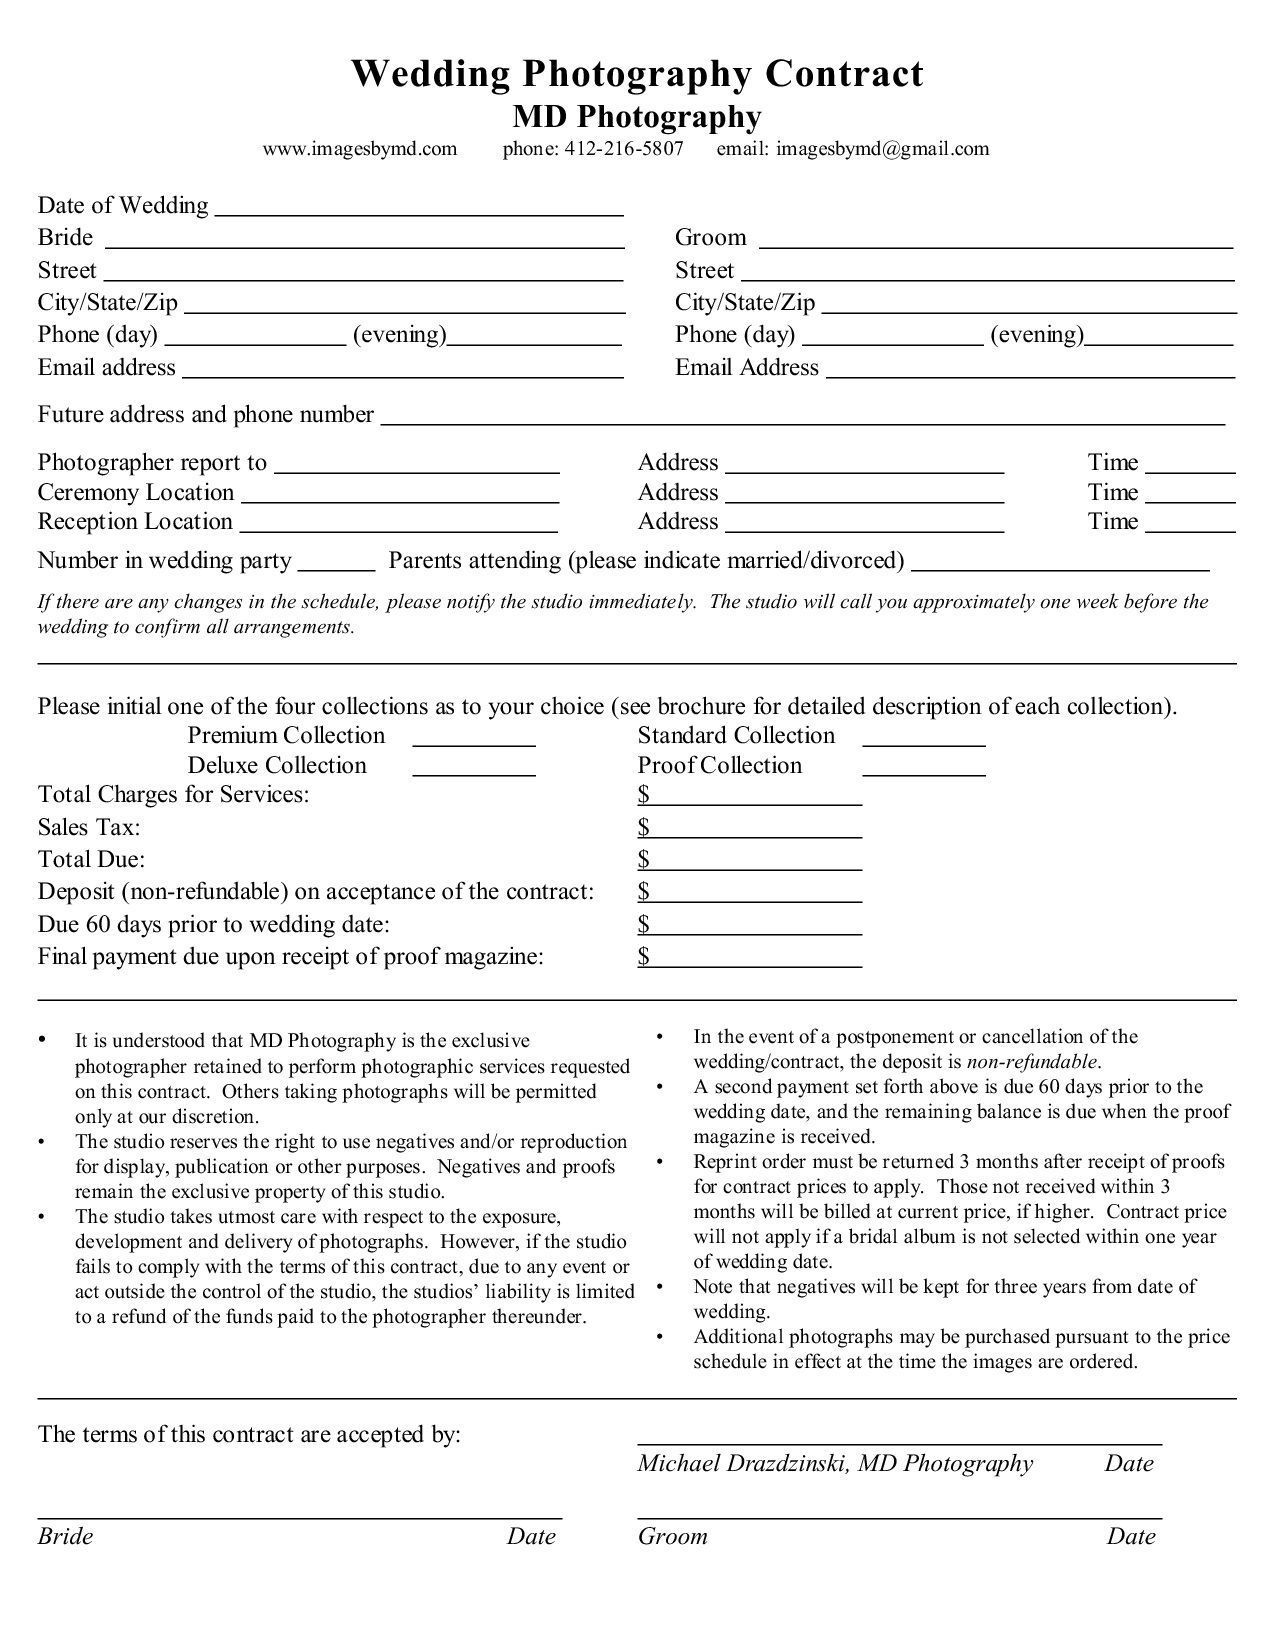 008 Striking Wedding Photography Contract Template Canada High Def Full